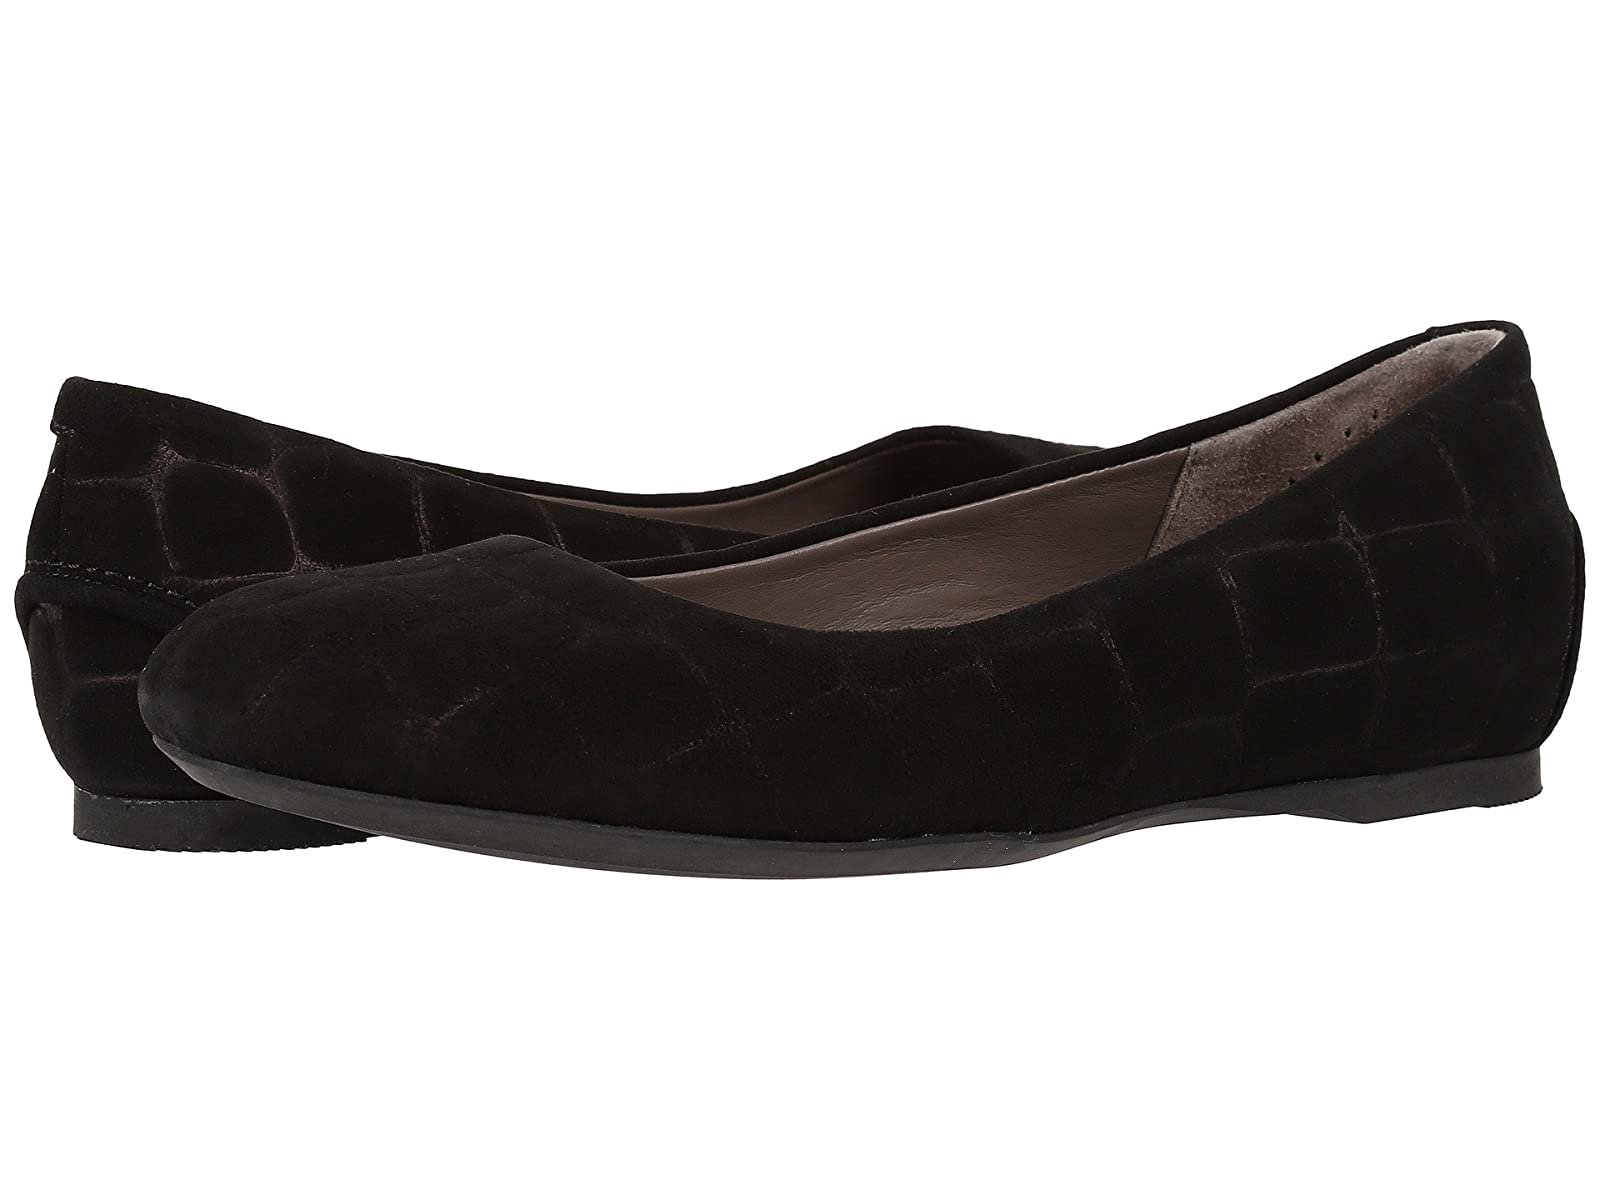 SAS LaceyCheap and distinctive eye-catching shoes